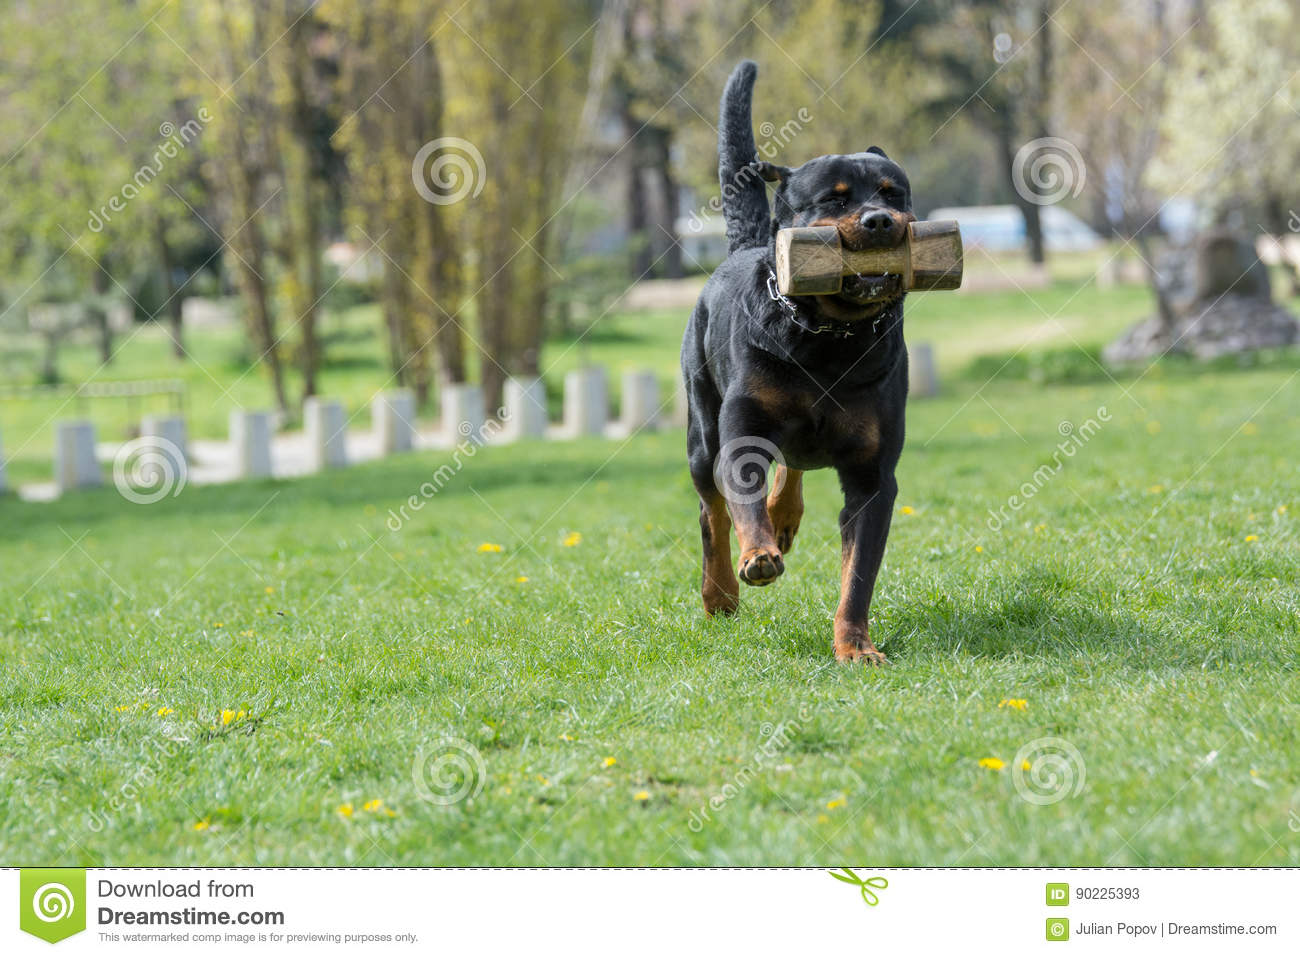 Rottweiler Running On The Grass Stock Image Image Of Fighter